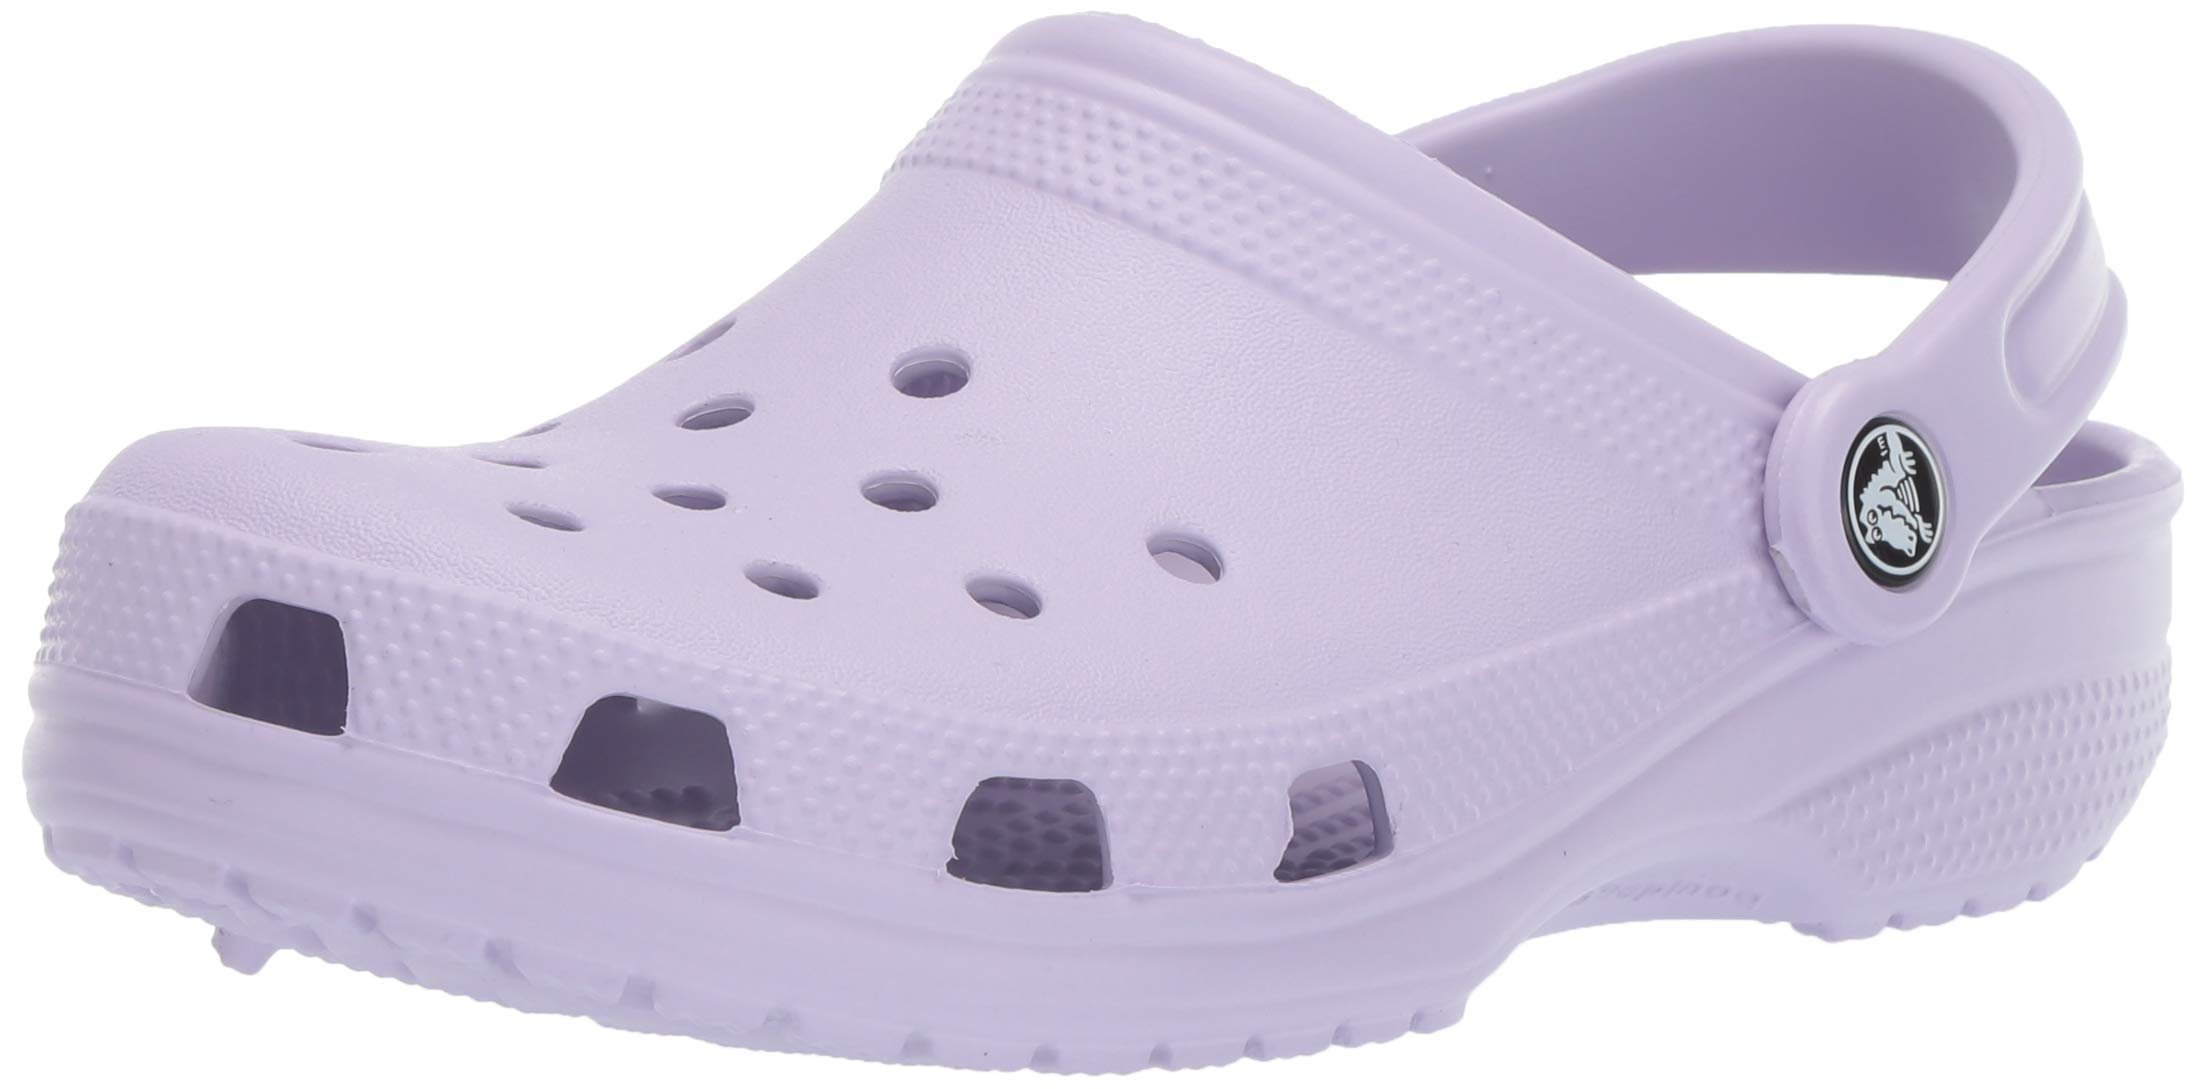 6d52148d95722 Crocs Men's and Women's Classic Clog, Comfort Slip On Casual Water Shoe,  Lightweight, Lavender, 11 US Women / 9 US Men